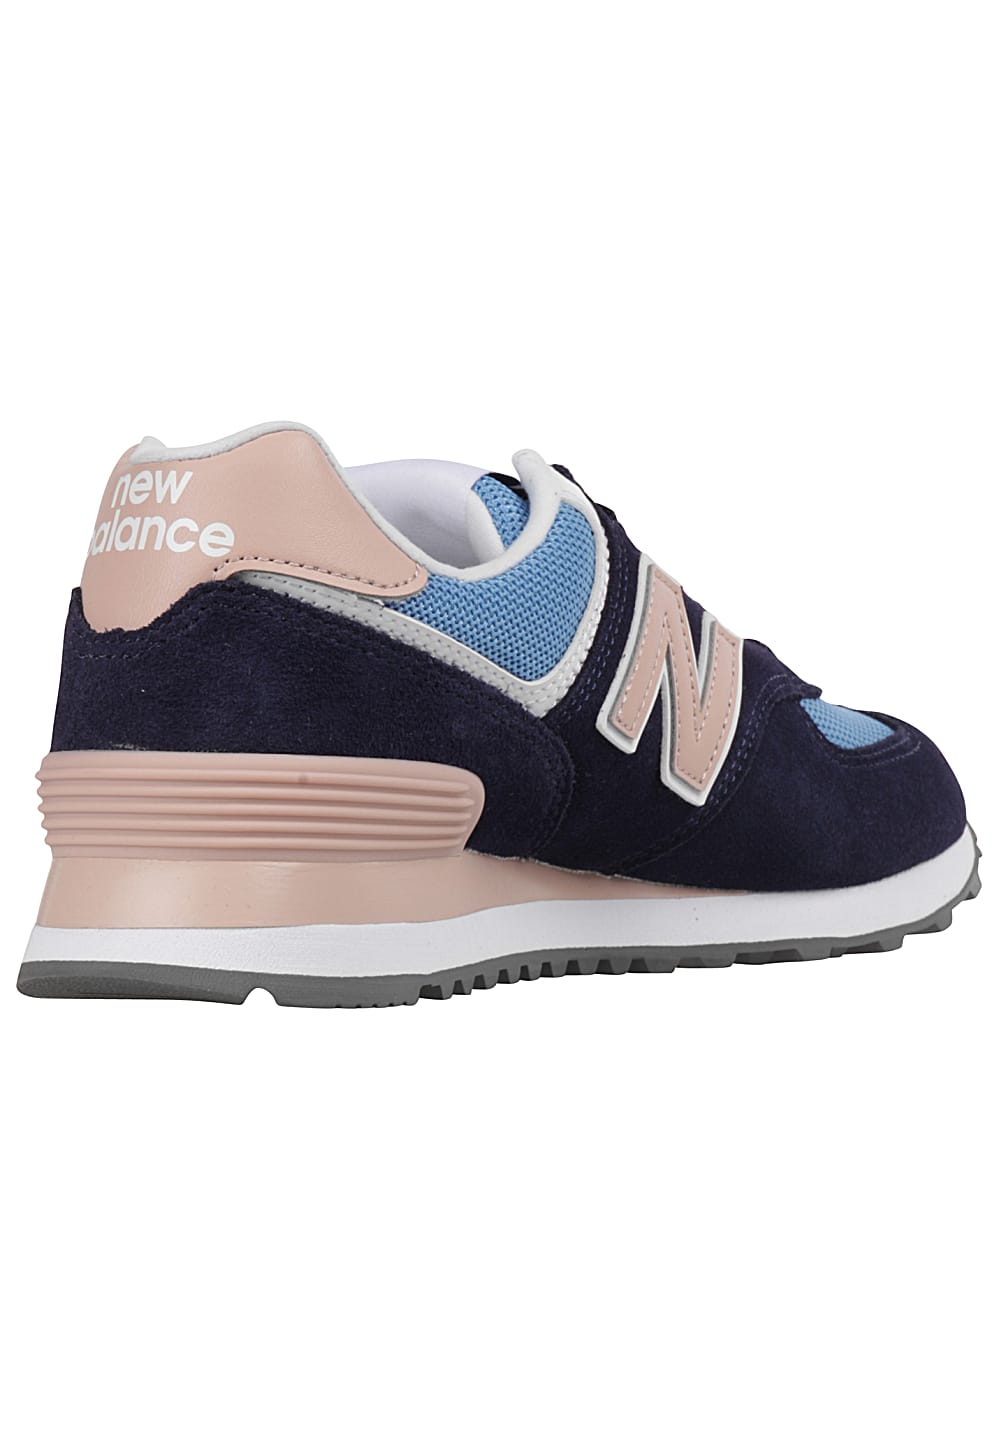 955fdcab32 NEW BALANCE WL574 - Sneakers for Women - Blue - Planet Sports